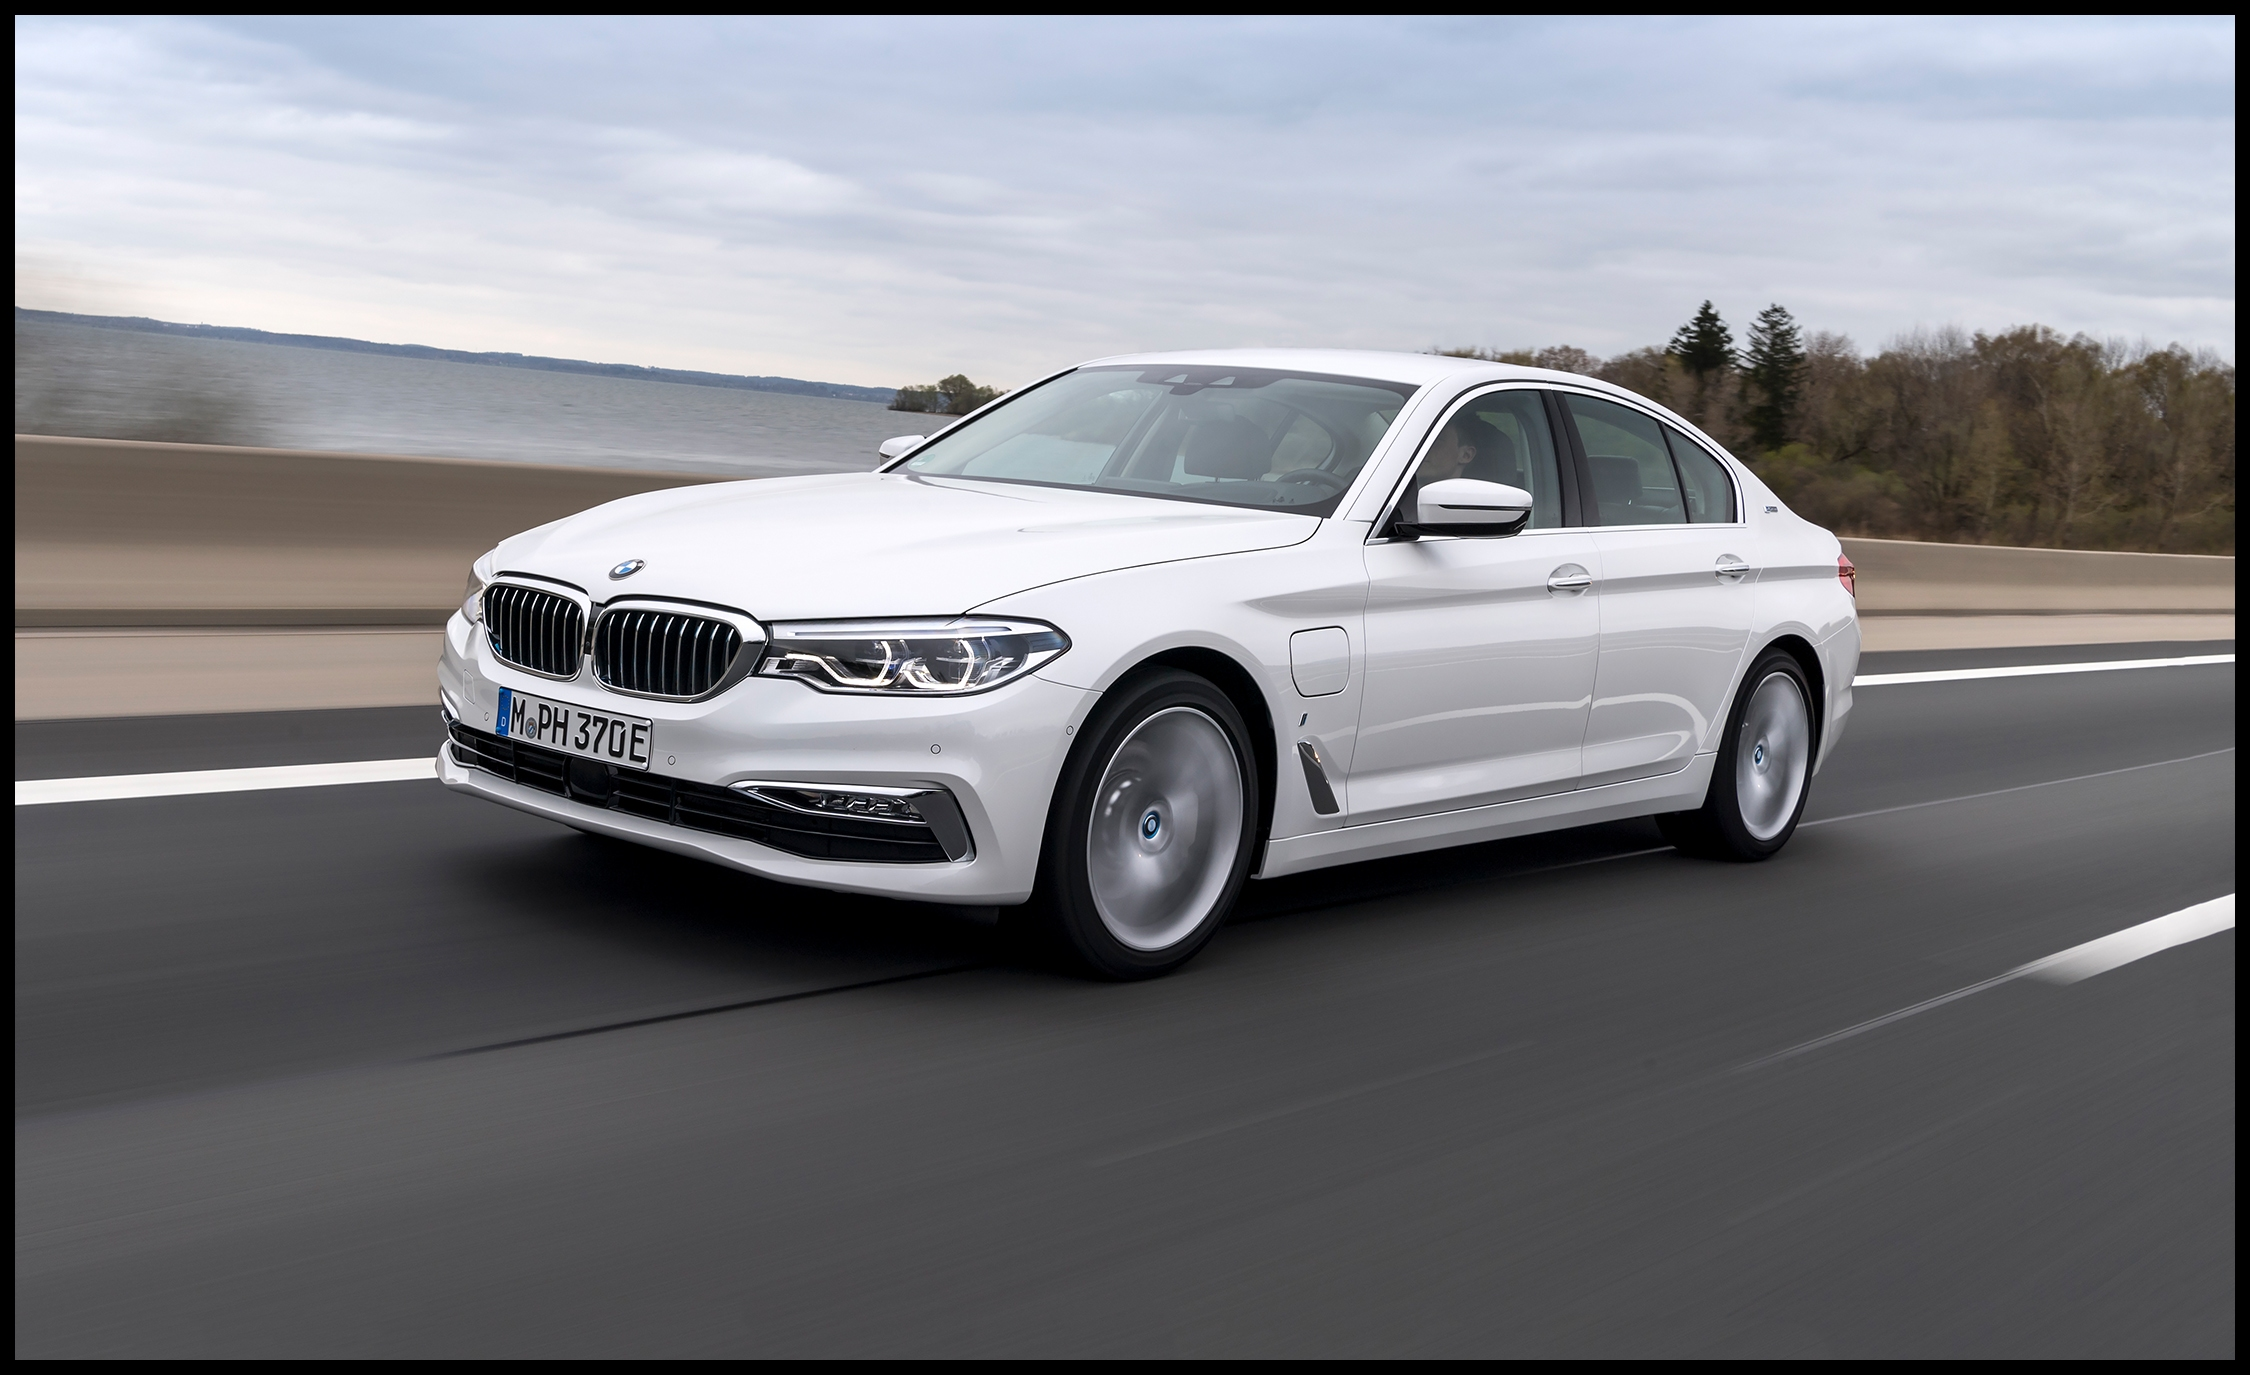 2018 bmw 530e plug in hybrid first drive review car and driver photo s original